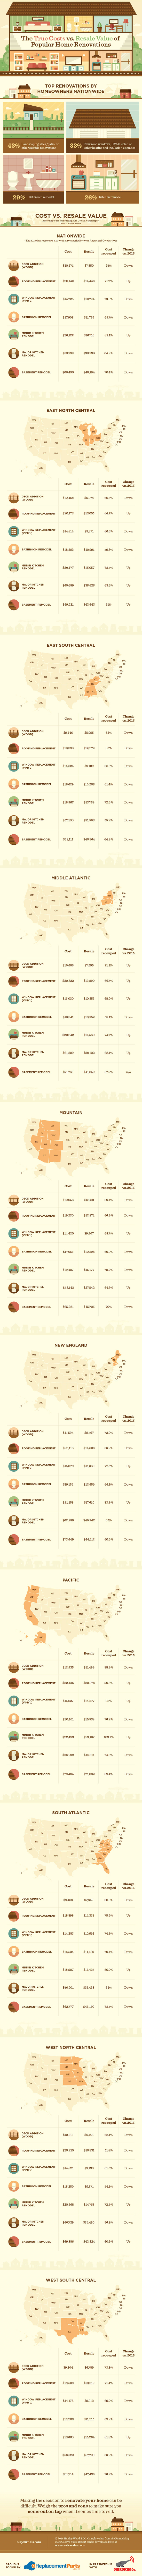 Home renovations infographic